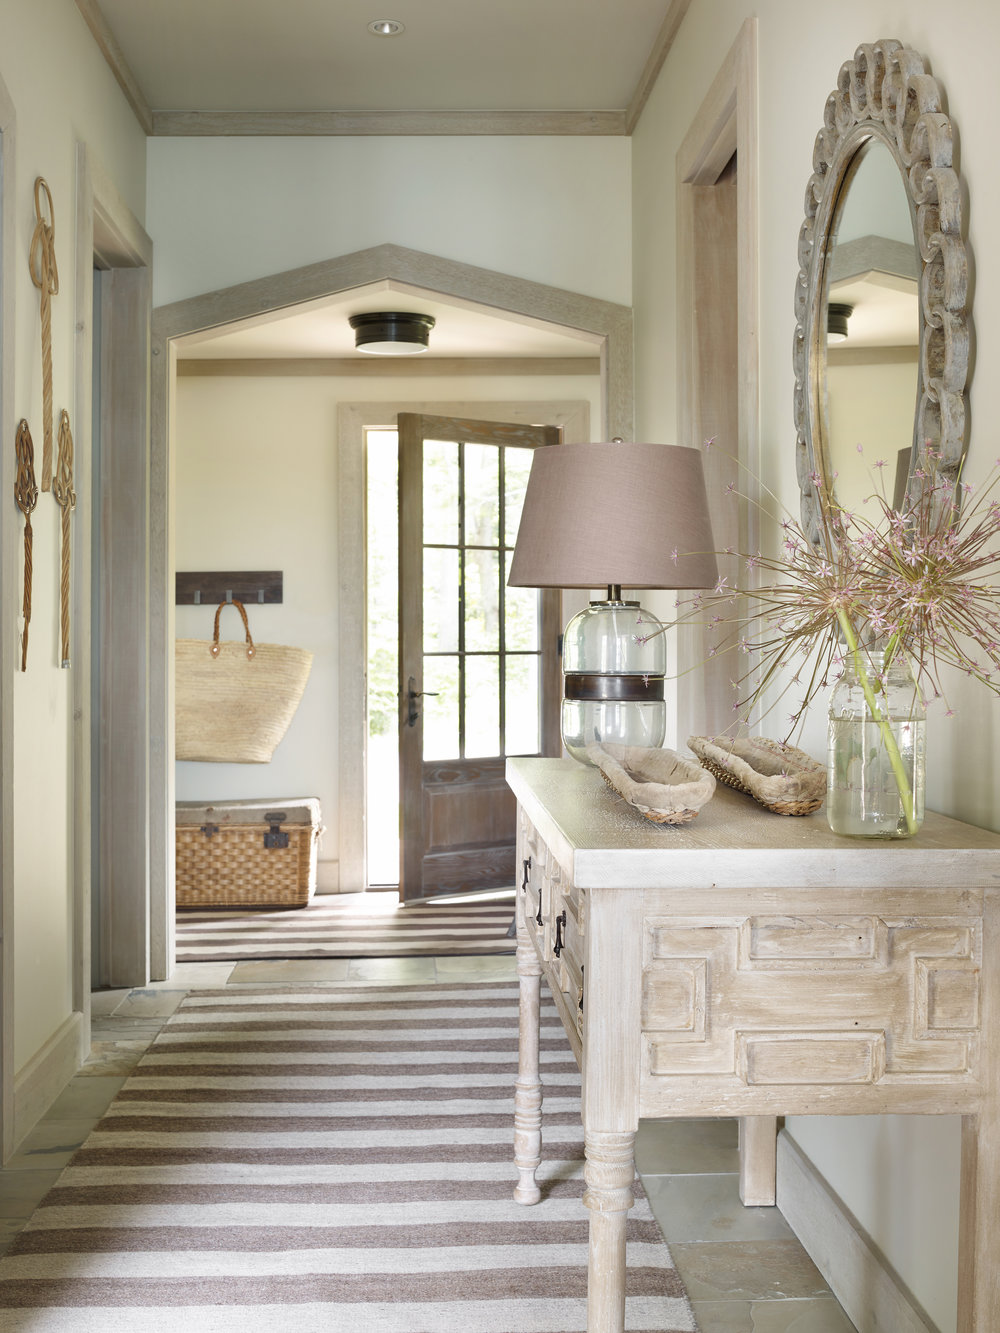 Interior Designer Beth Webb - Book Review |#foyer #entryhall #bethwebb #interiordesignbooks